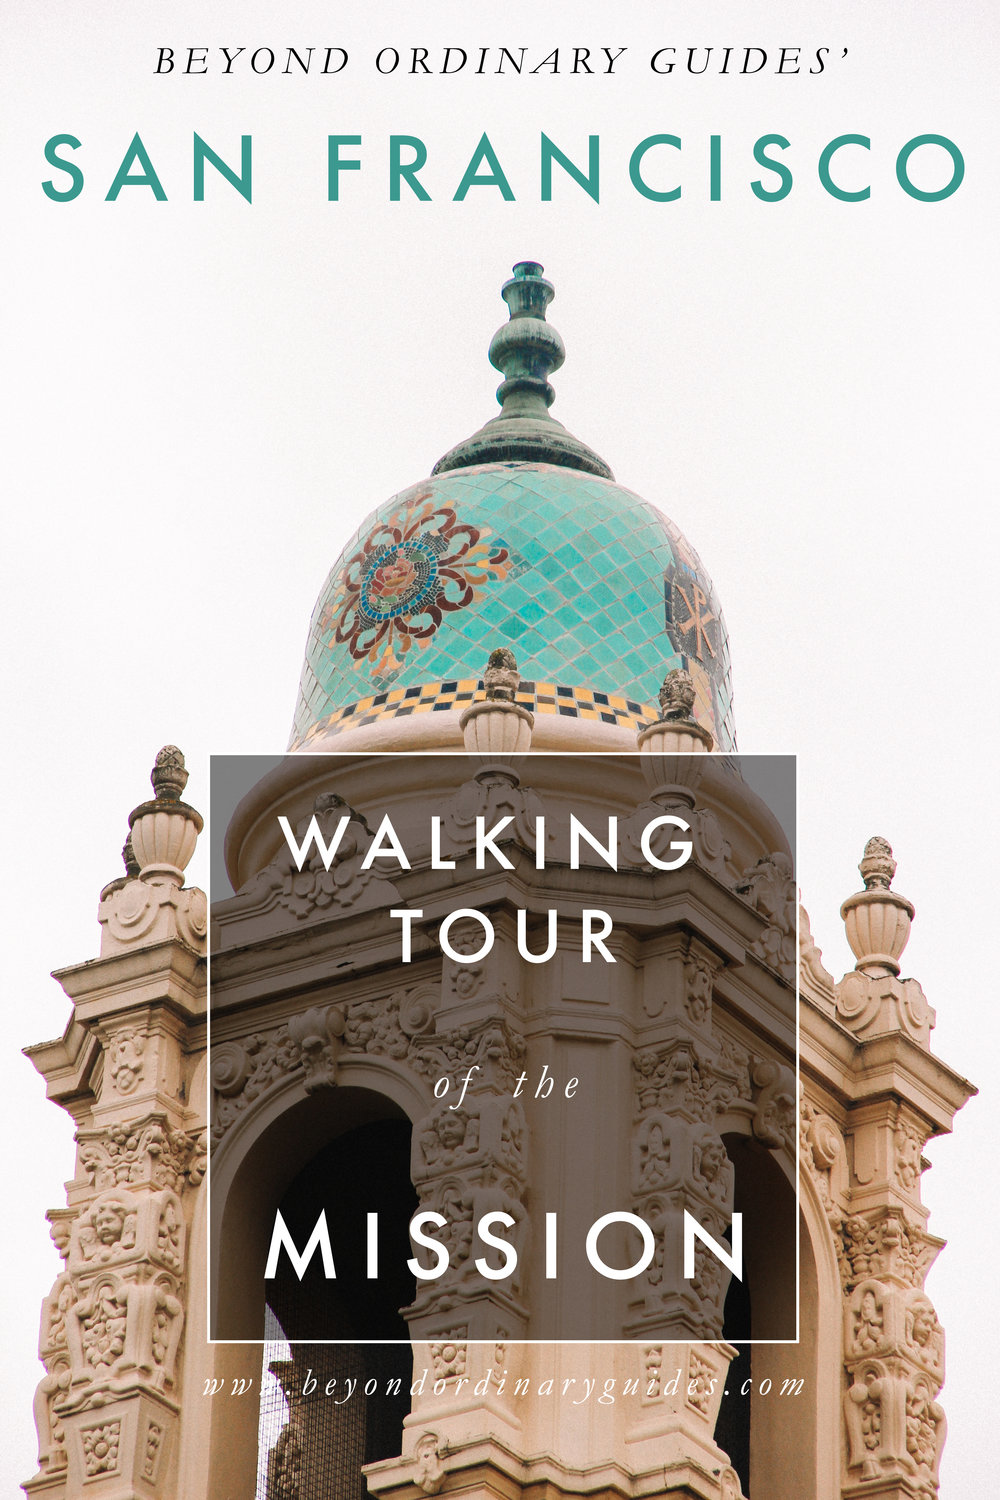 Food + Art Inspired Walking Tour of the Mission